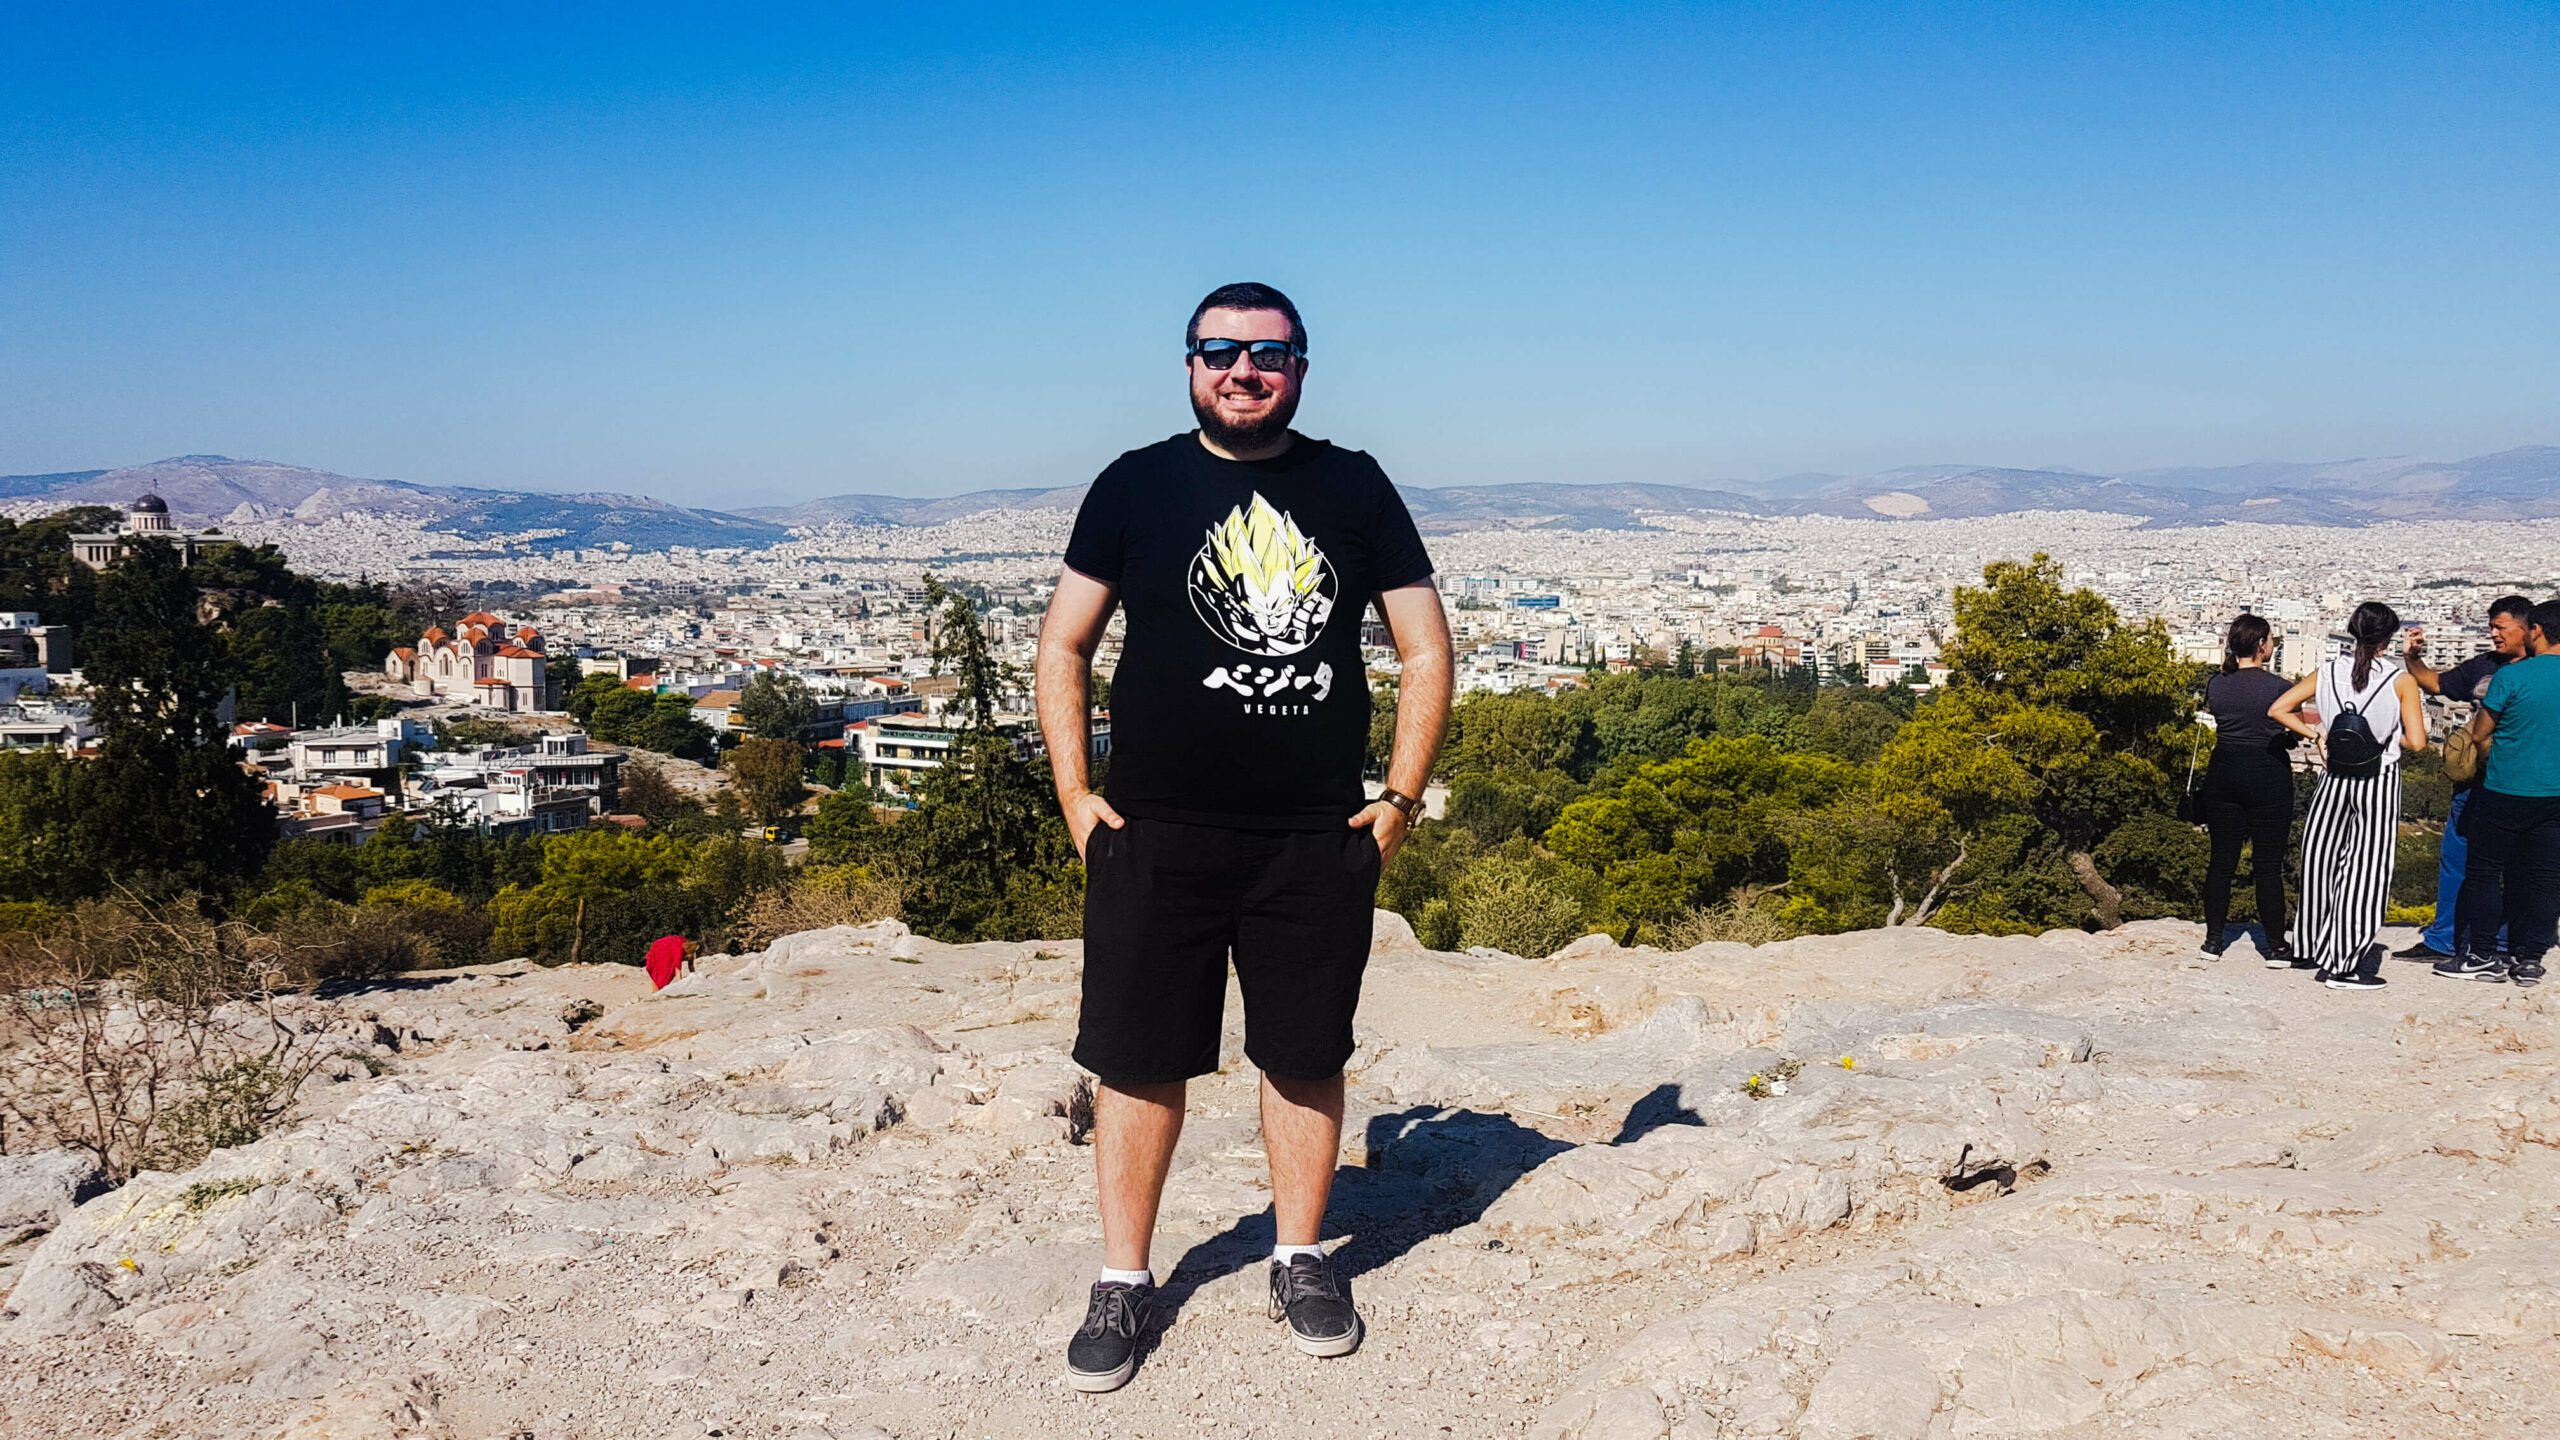 Me at Mars Hill, Athens this year - where reality was much better than expectations!